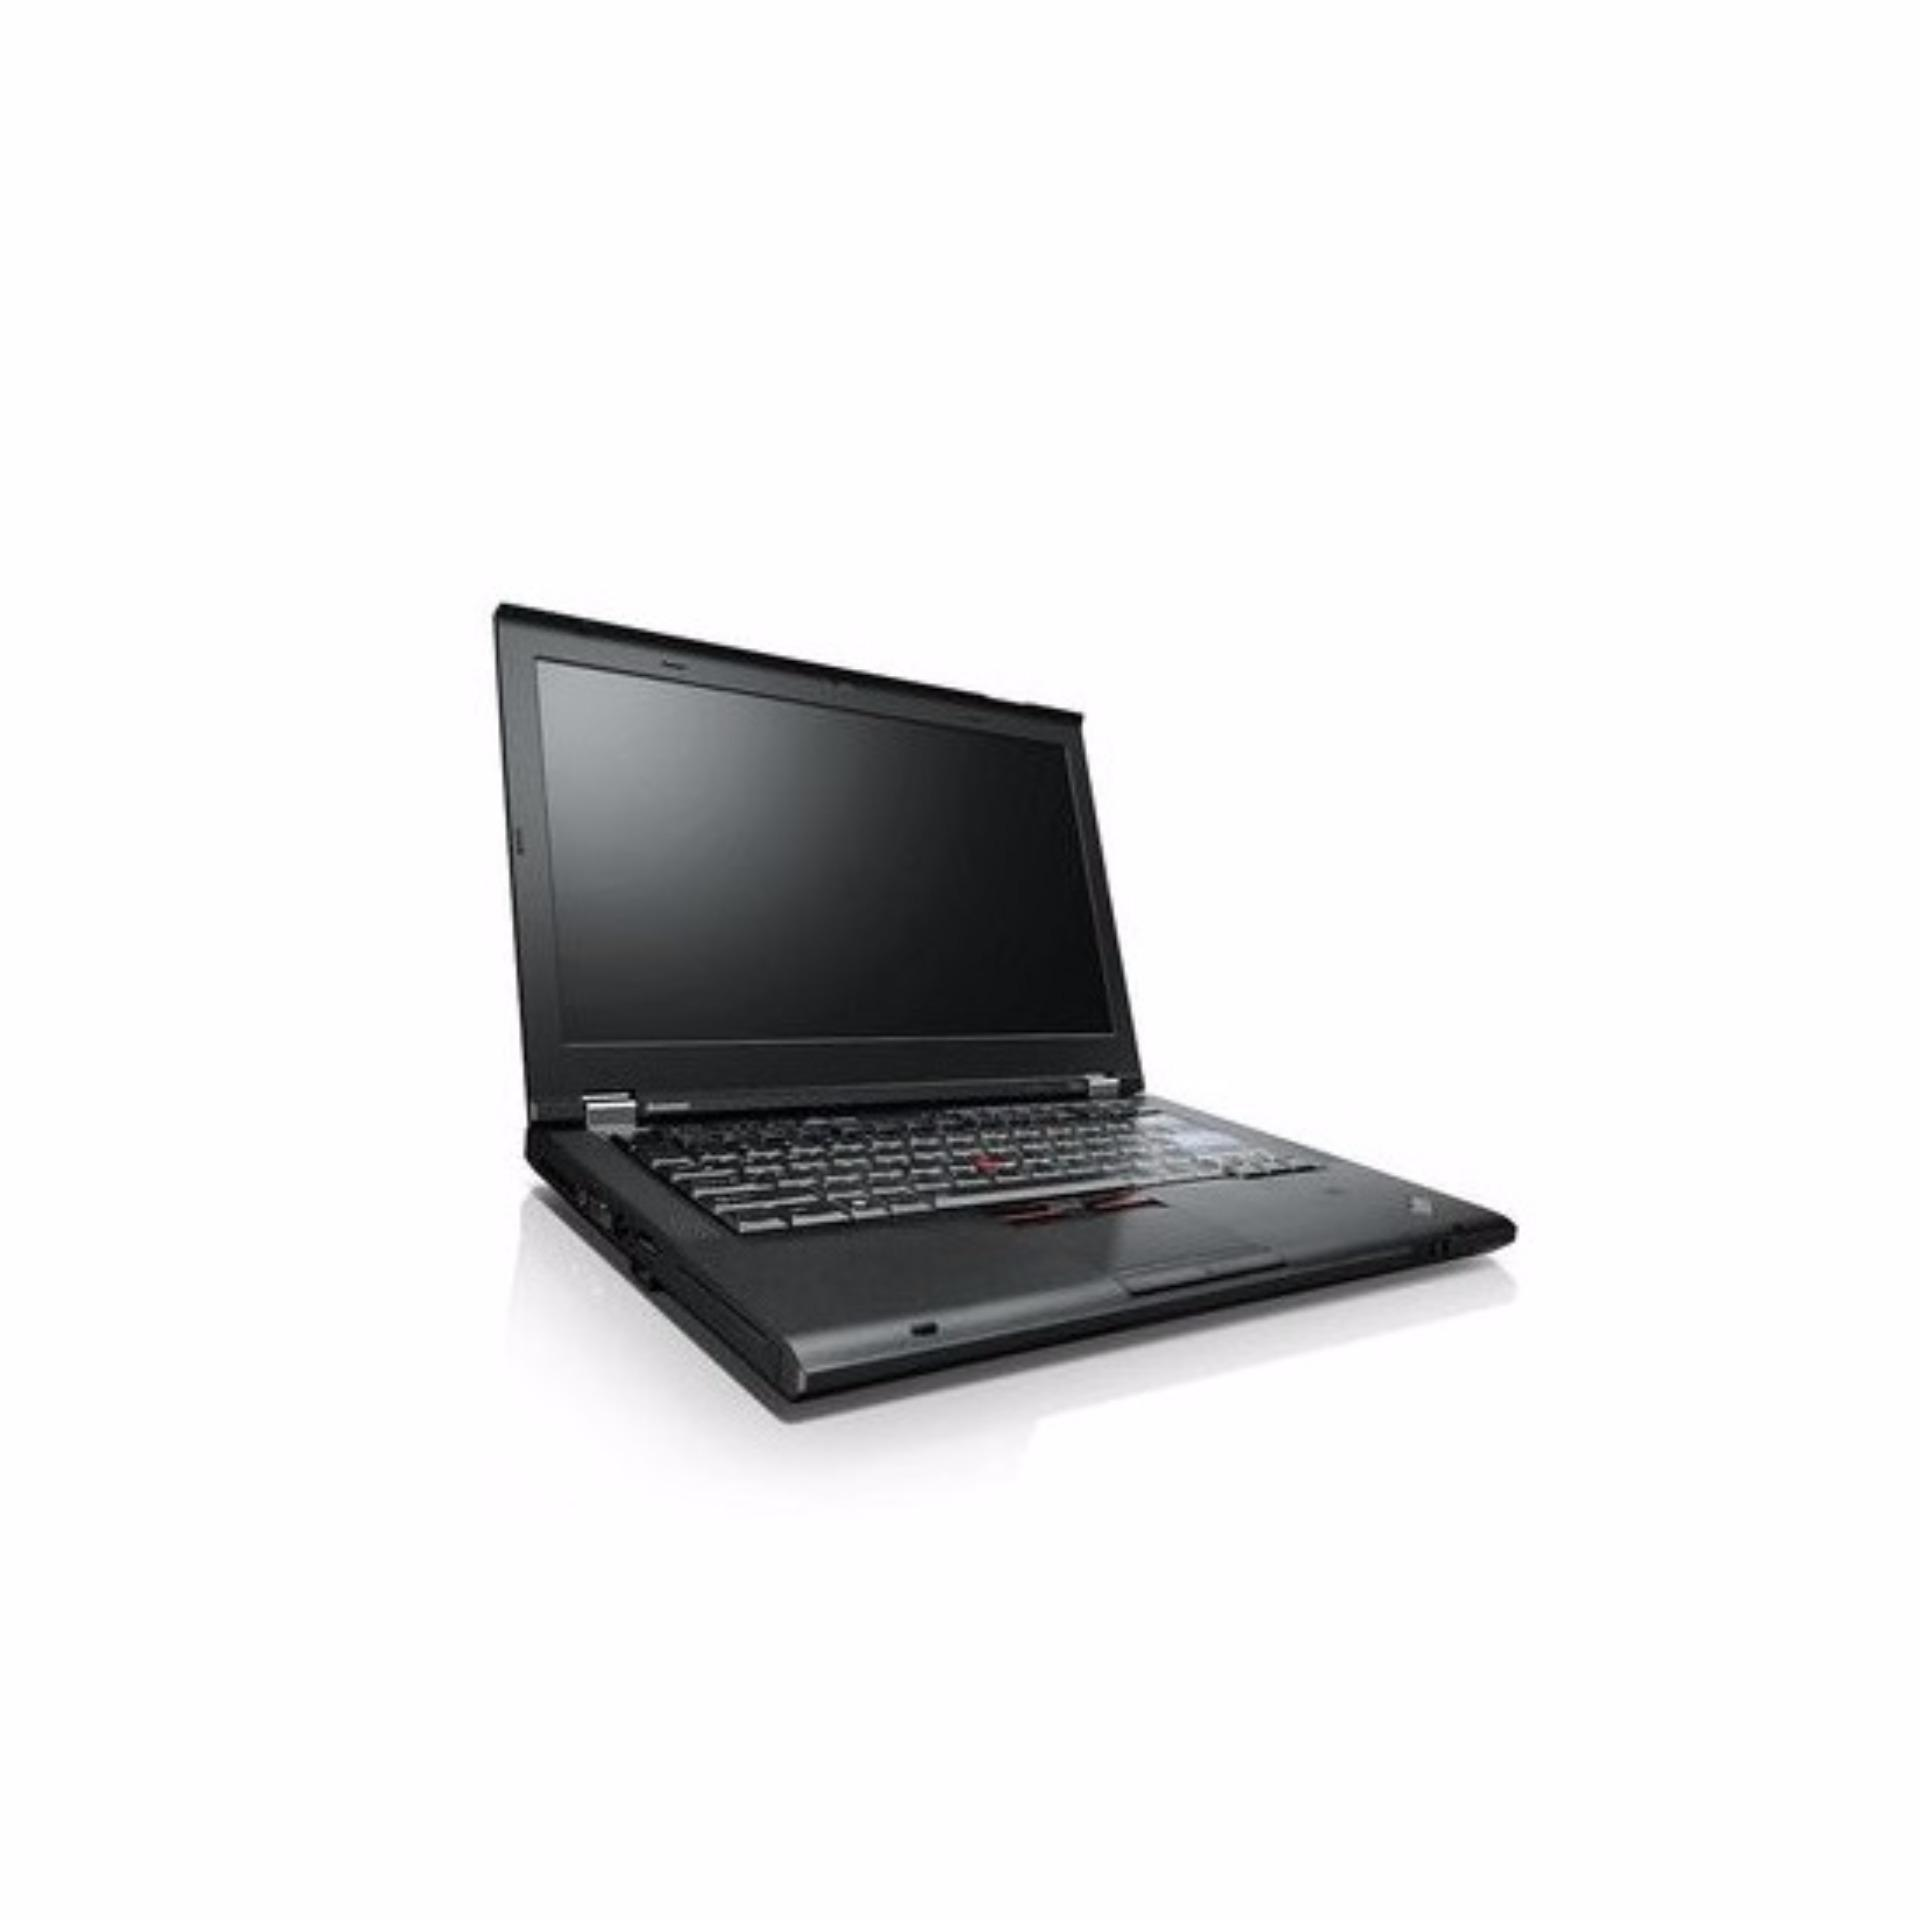 [Refurbished] Lenovo ThinkPad T420 / Intel Core i3 – 2nd Gen / 8GB